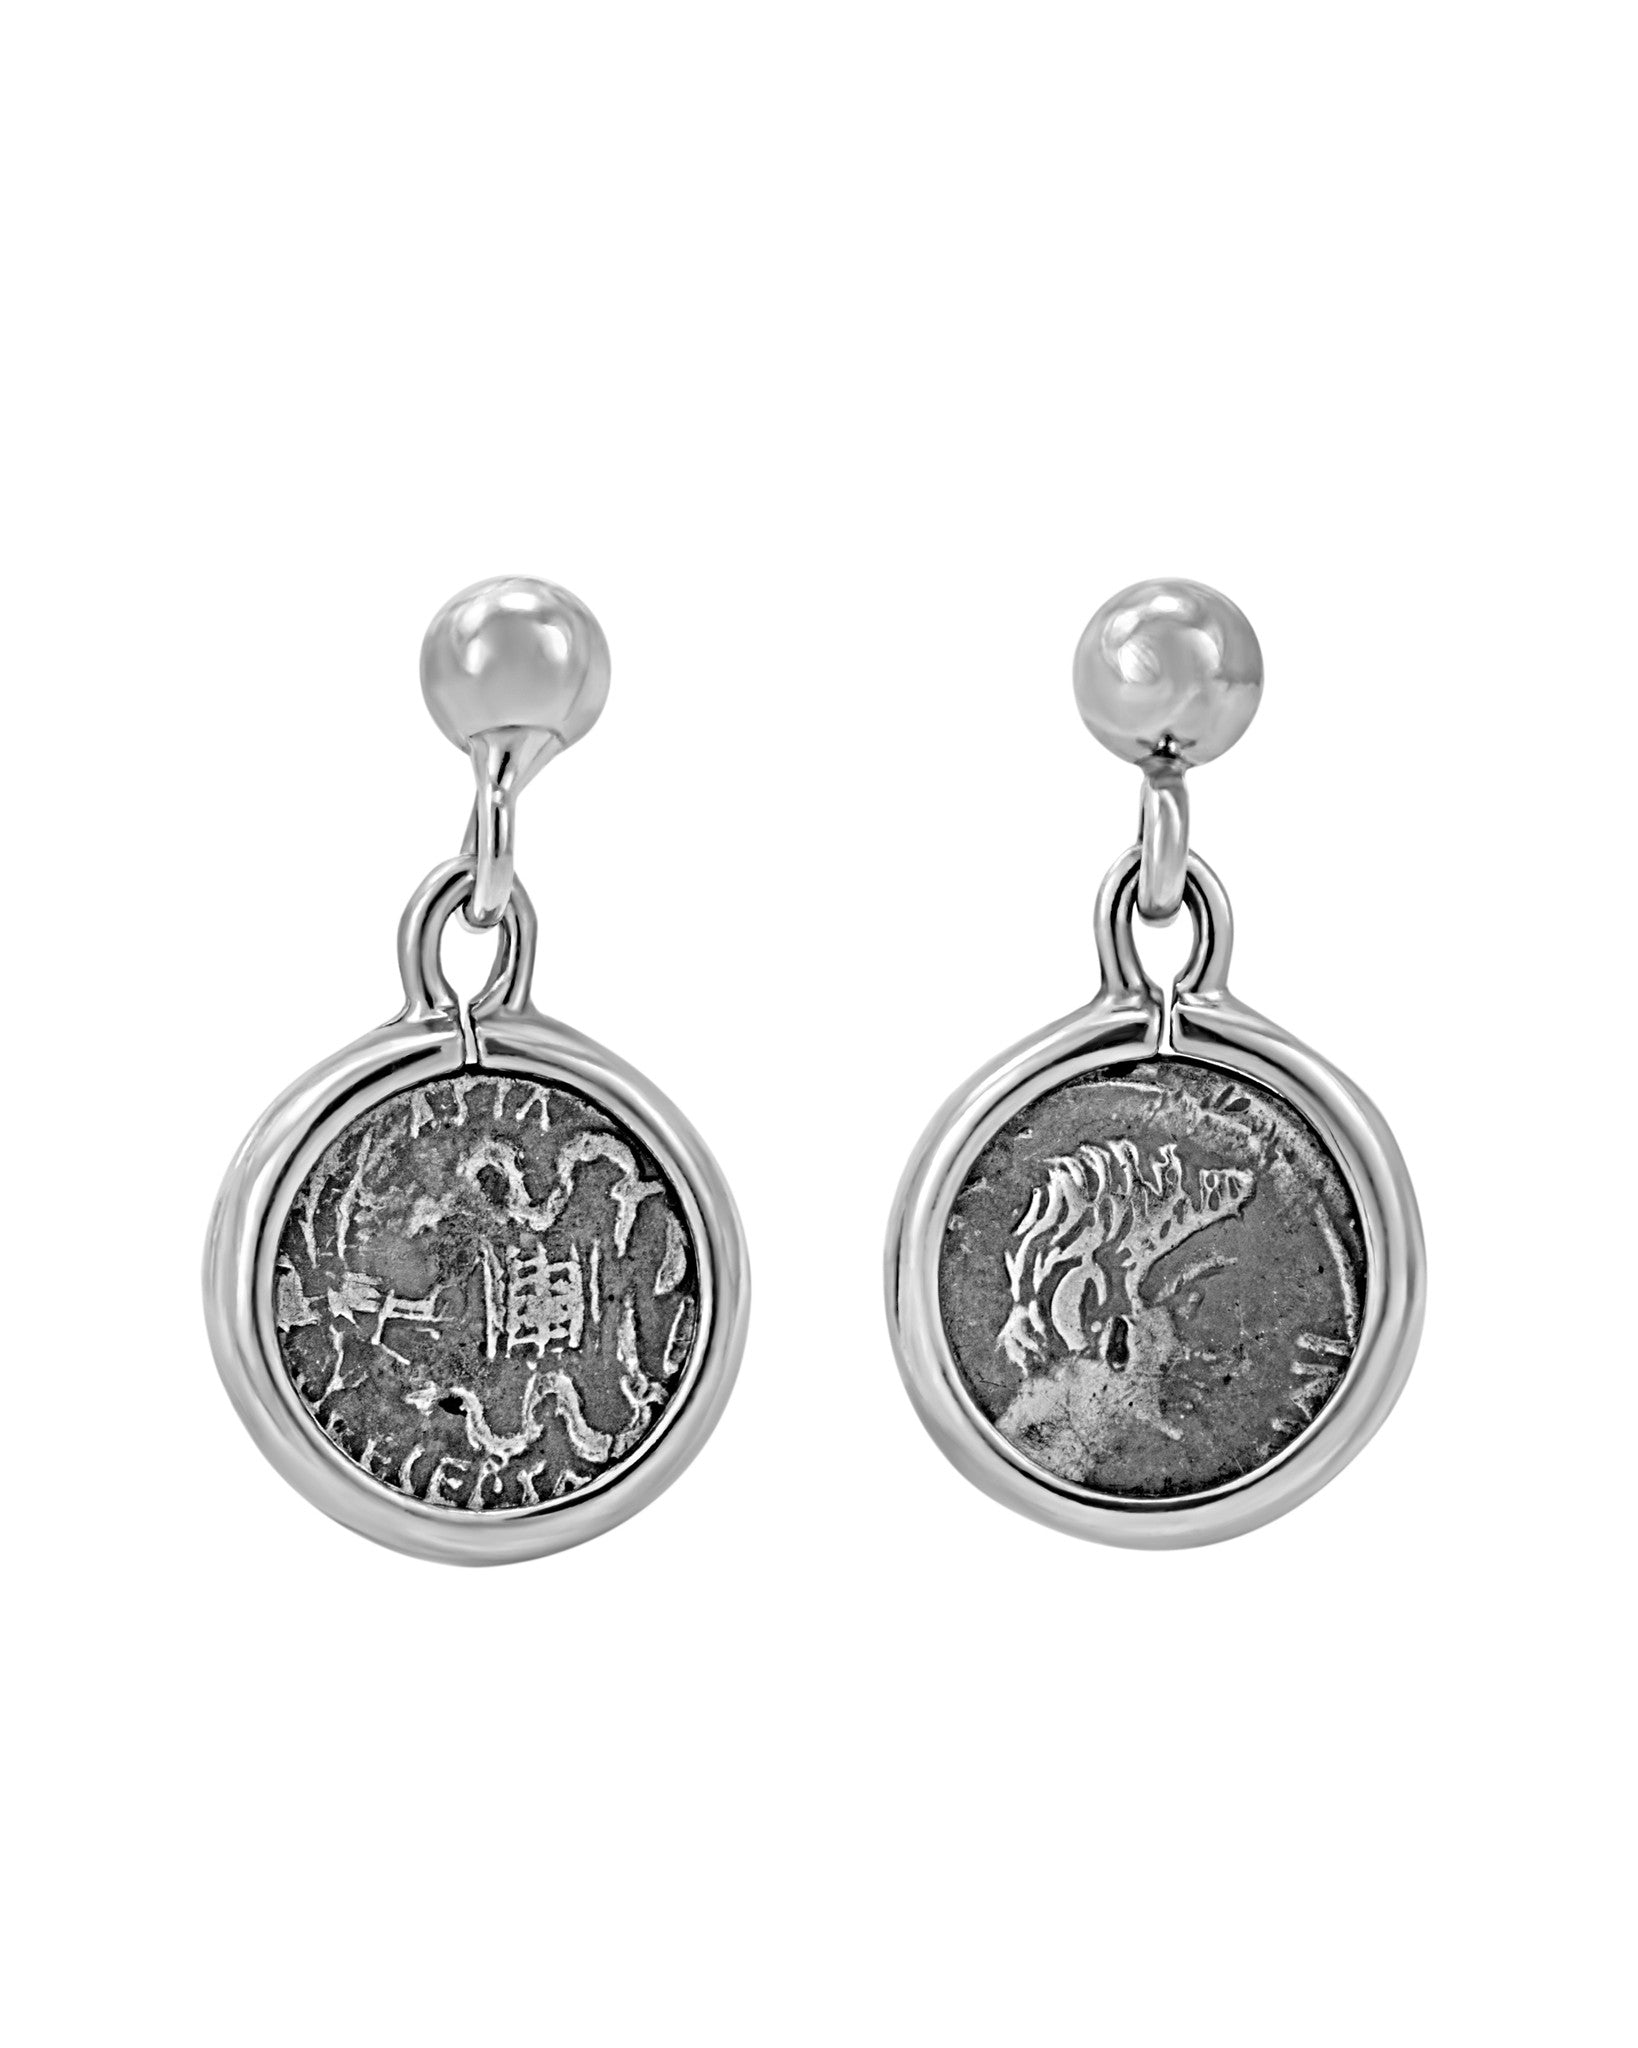 Legacy Sterling Silver Post Earrings w/ Antique Ottaviano Coins